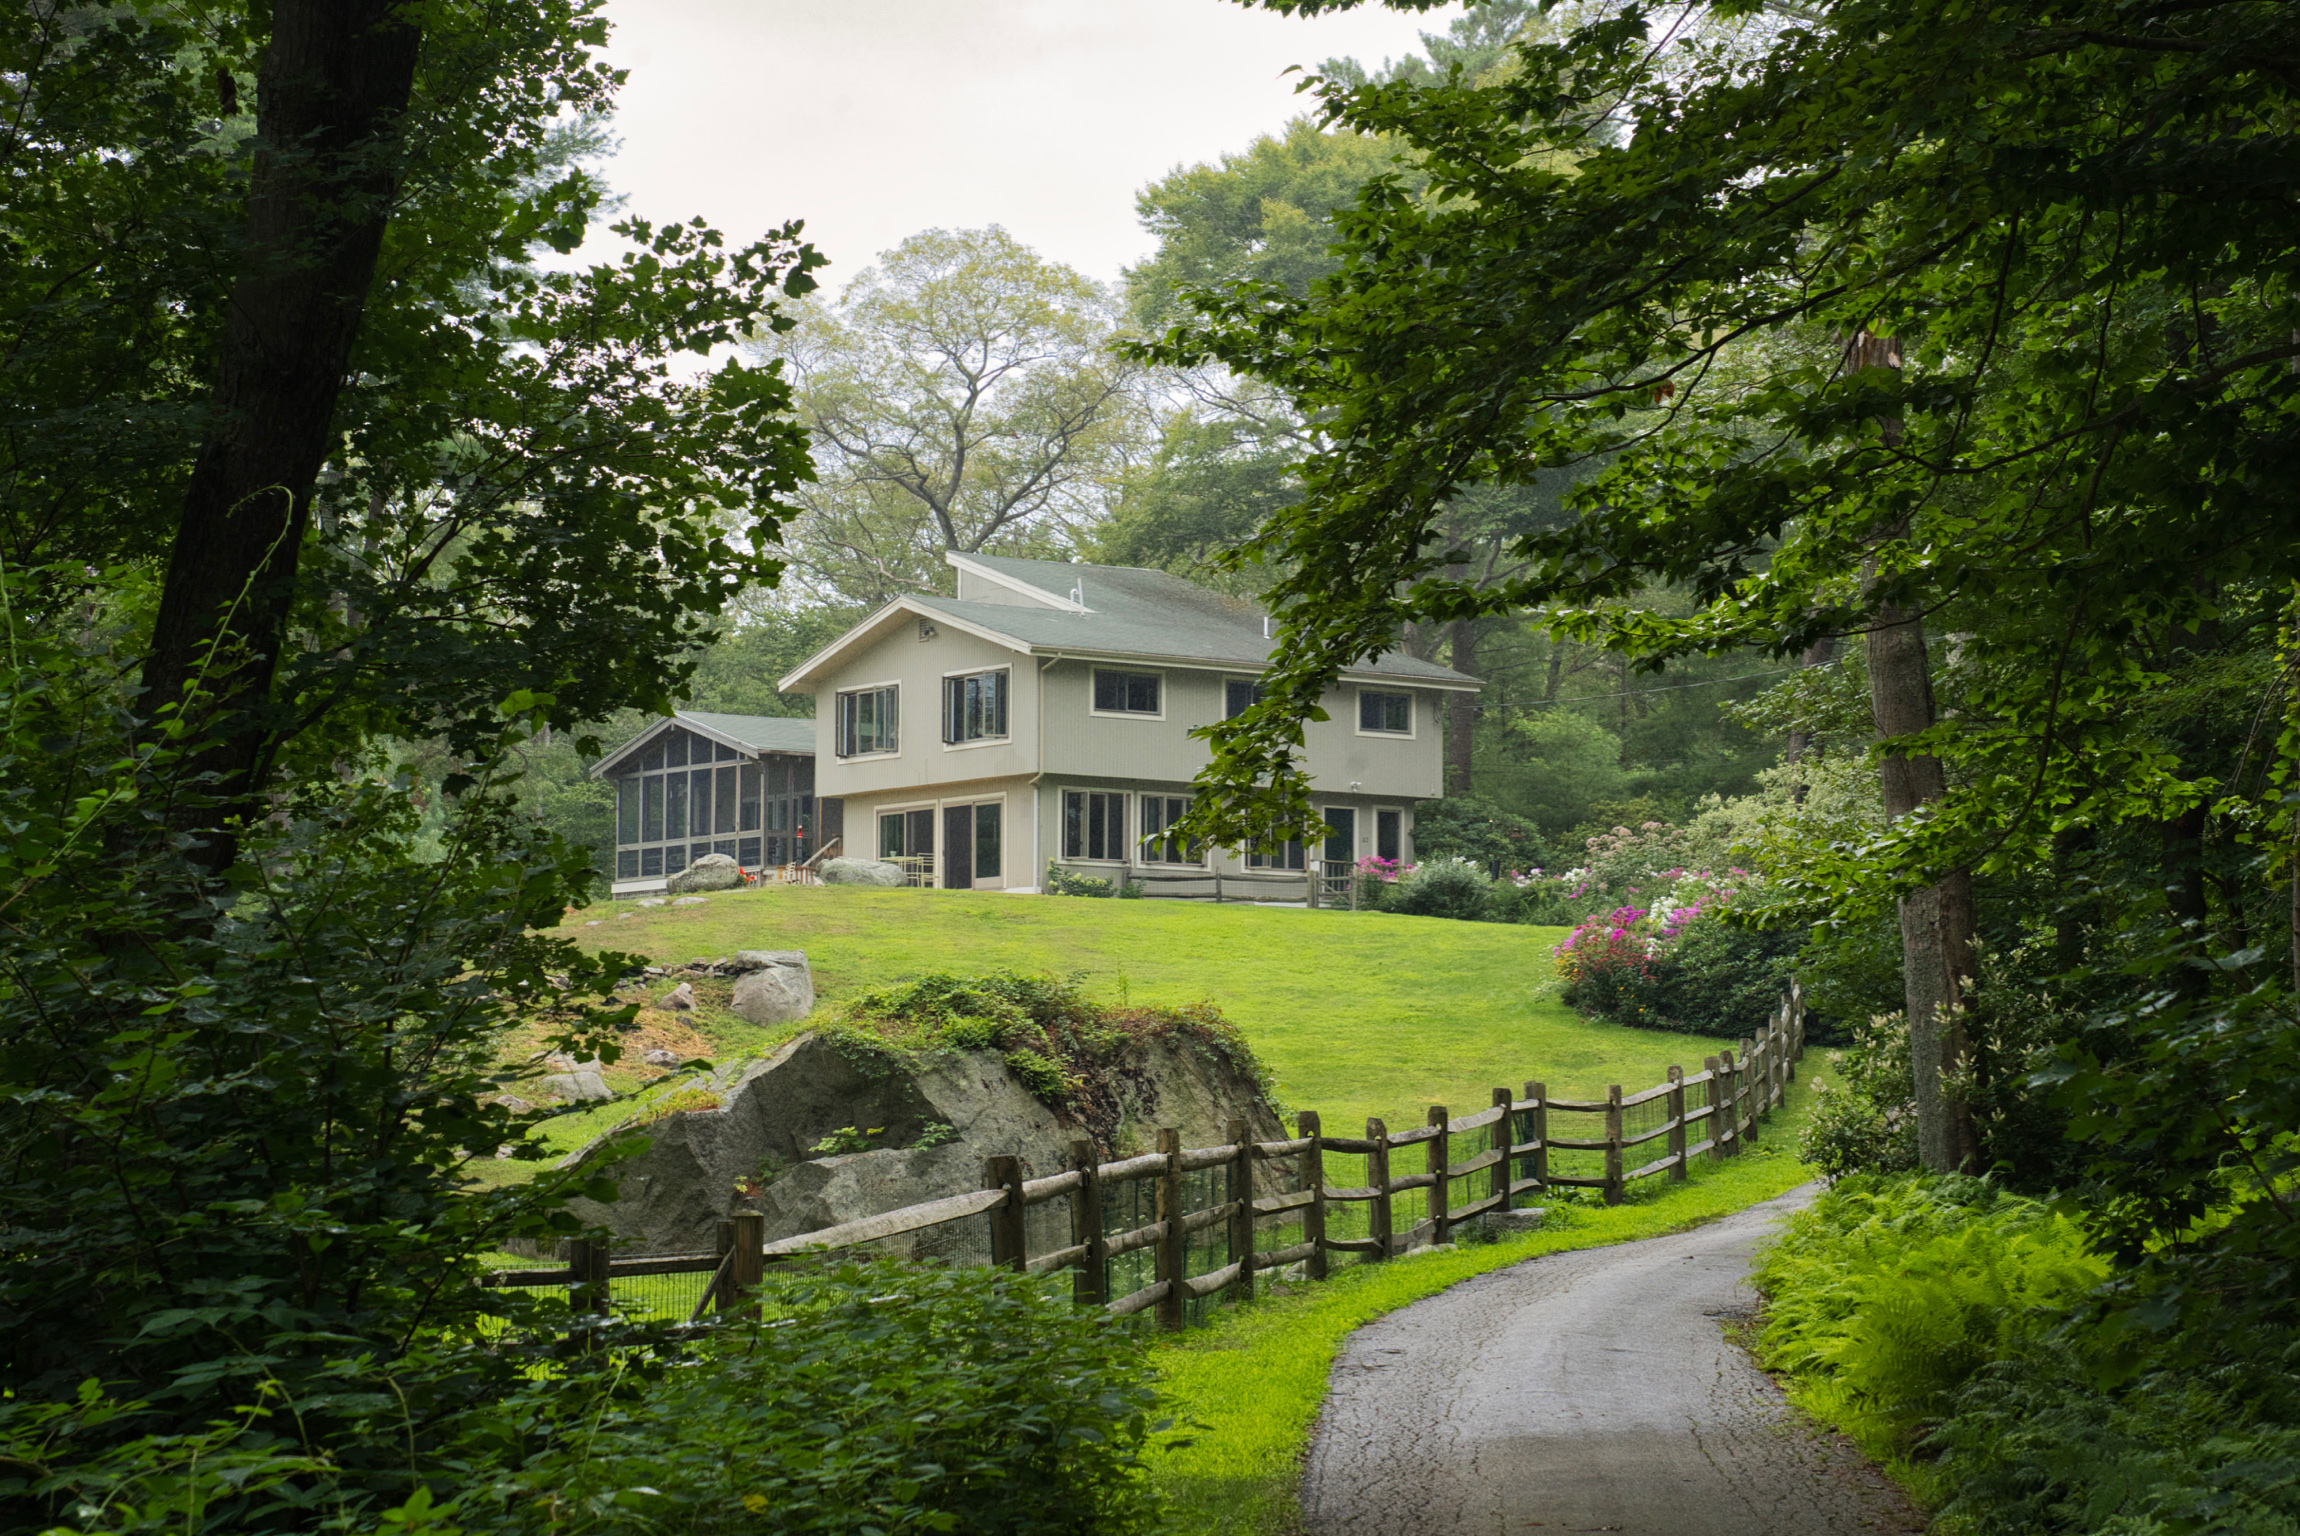 Fraser and Mateo's Annisquam home. José Mateo photograph